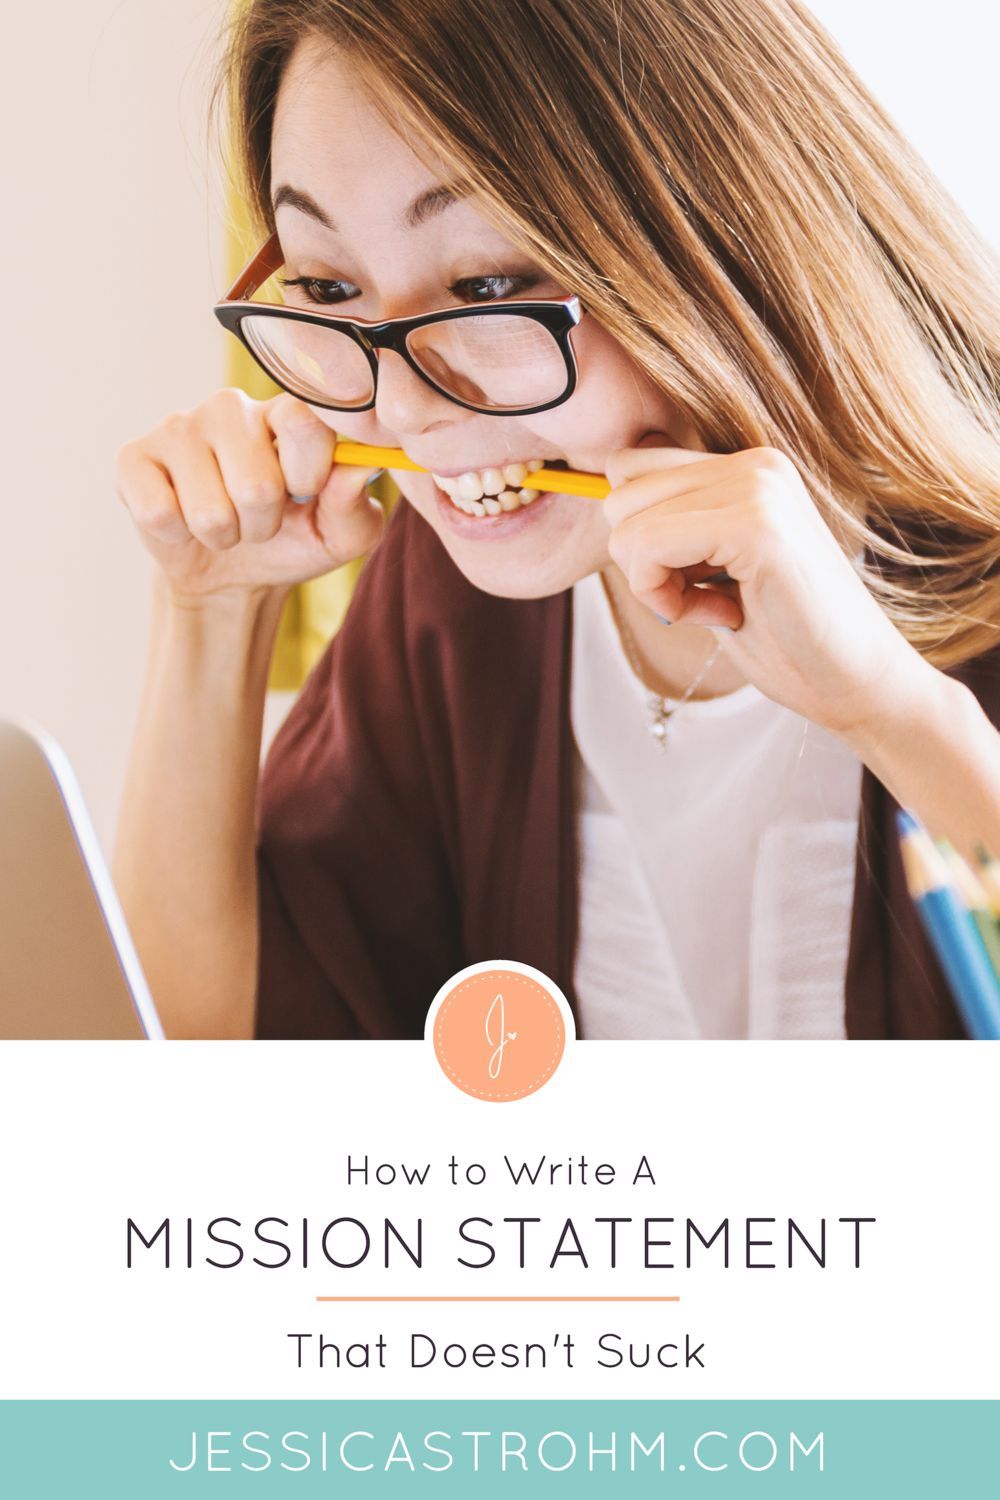 How to write a missions statement for your business that doesn't suck.